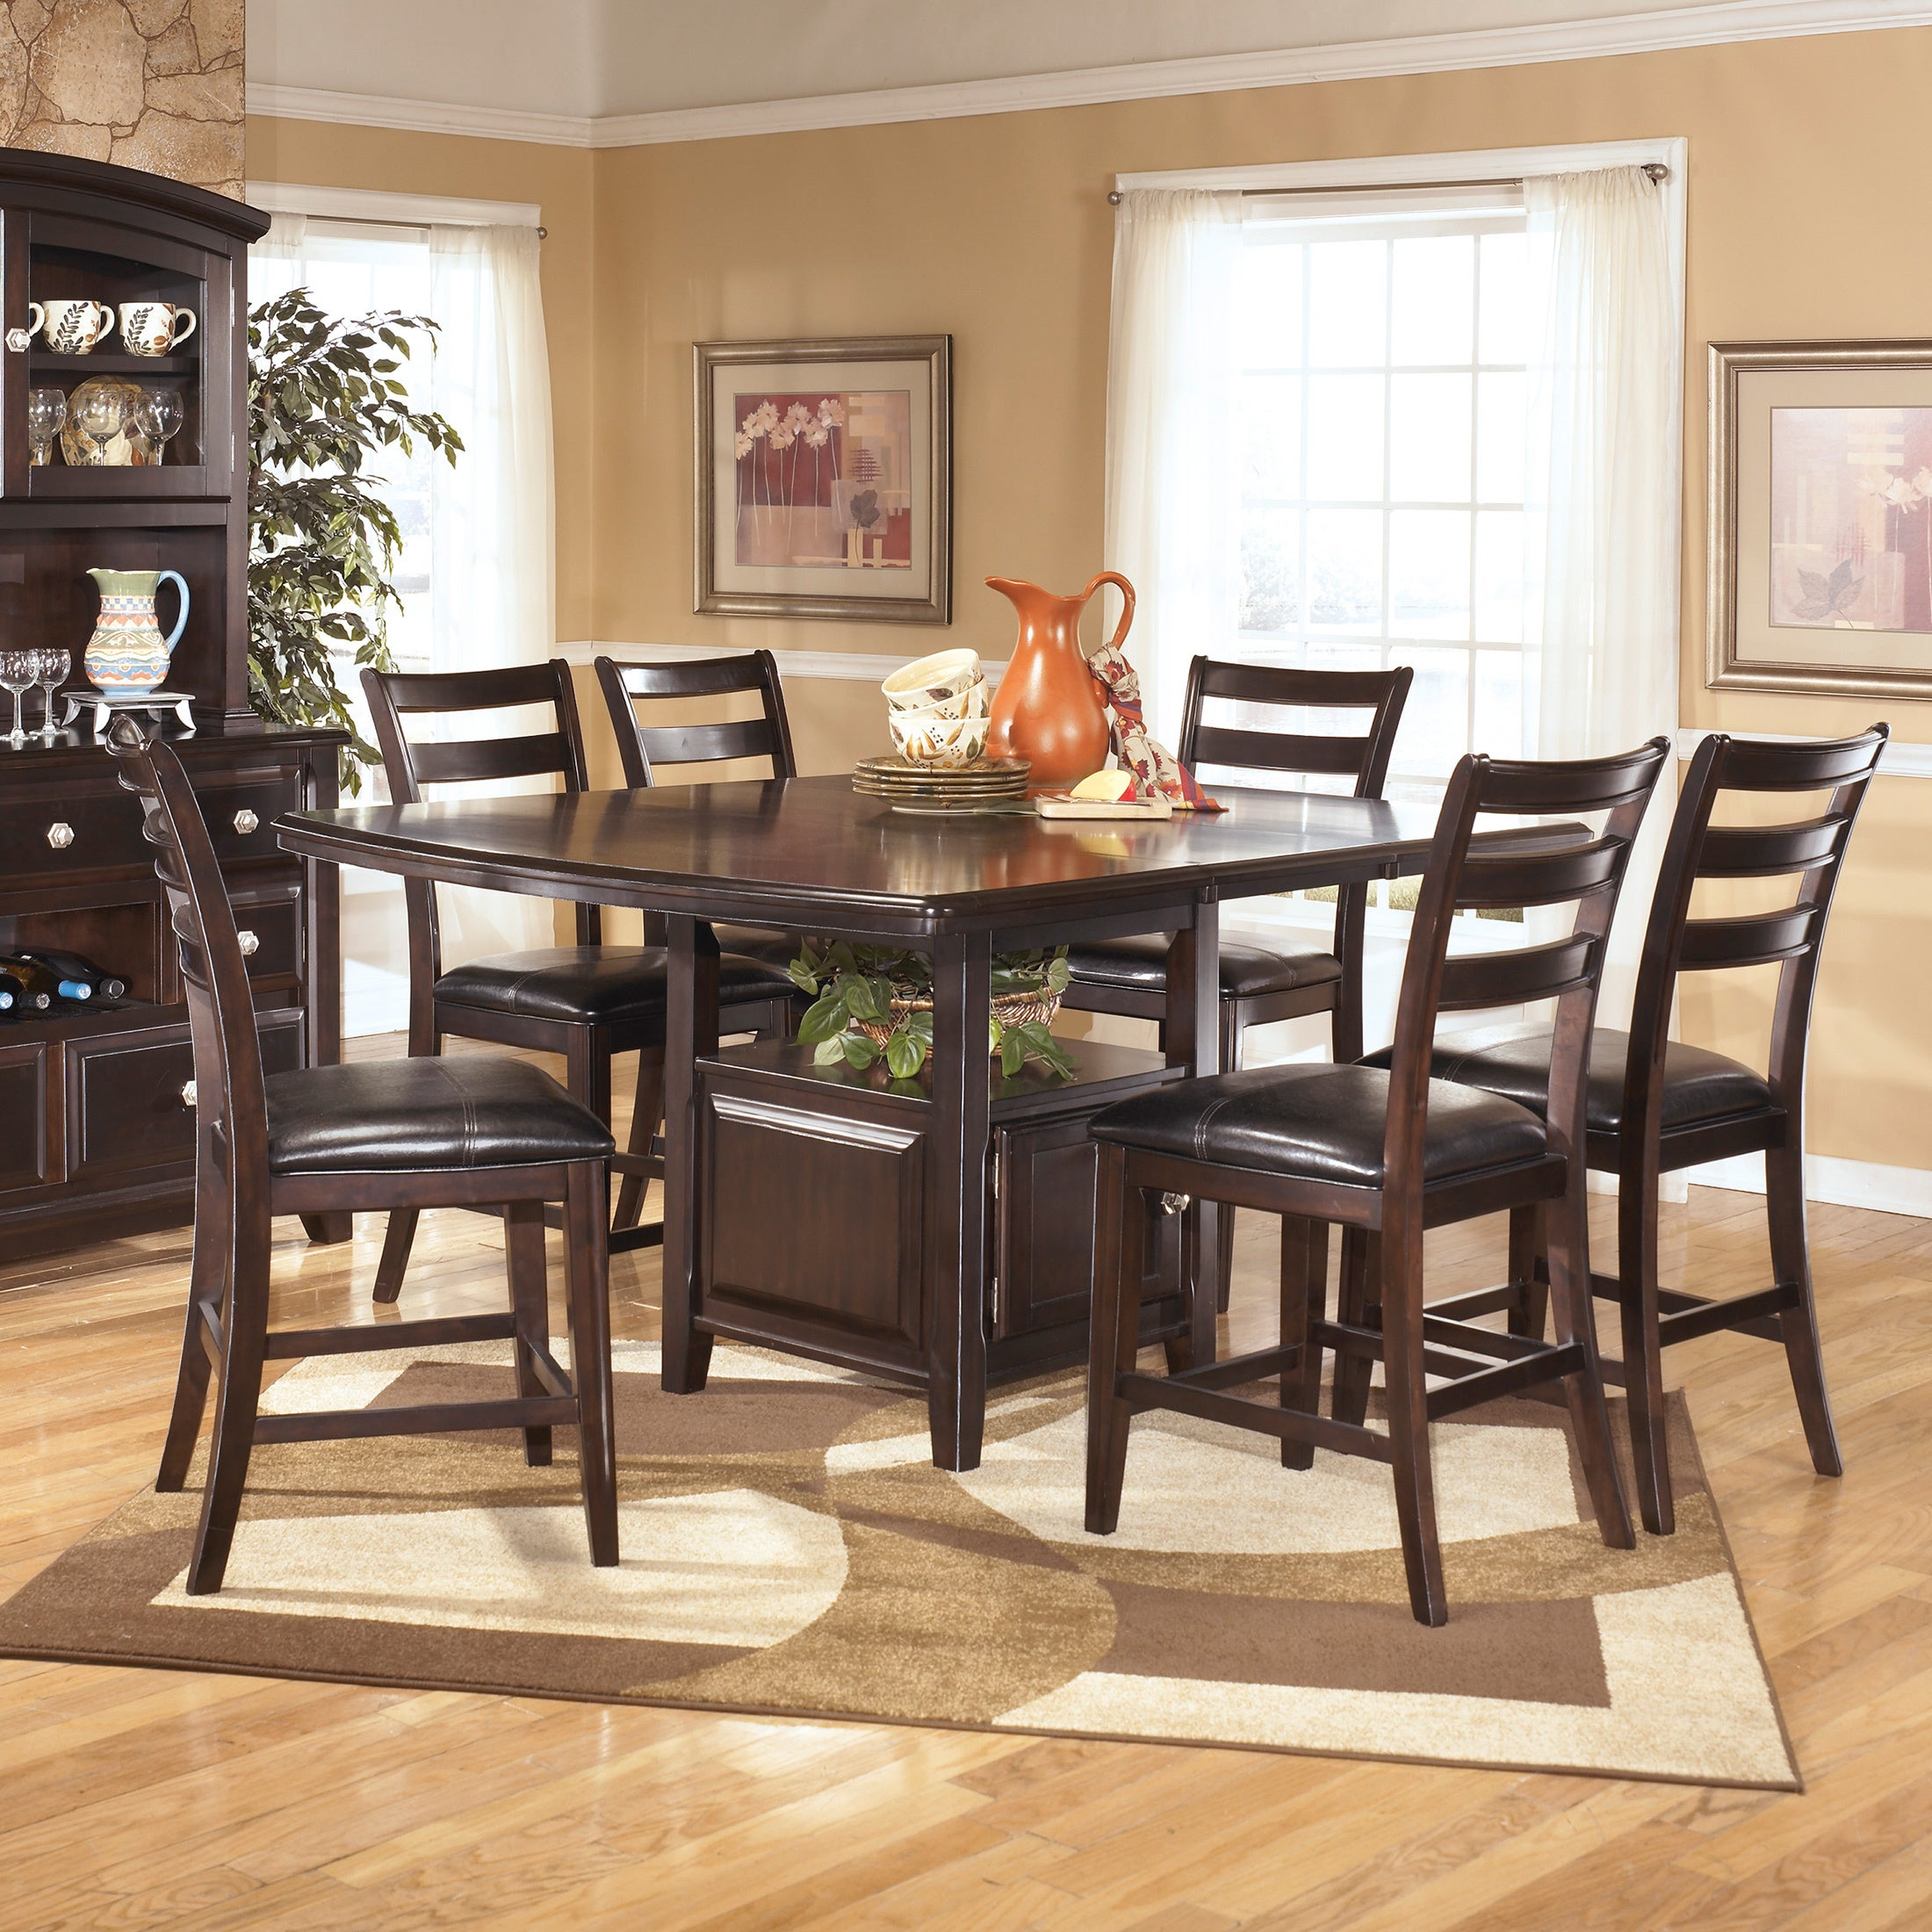 Shop Signature Design By Ashley Ridgley Square Dark Brown Dining Room Table